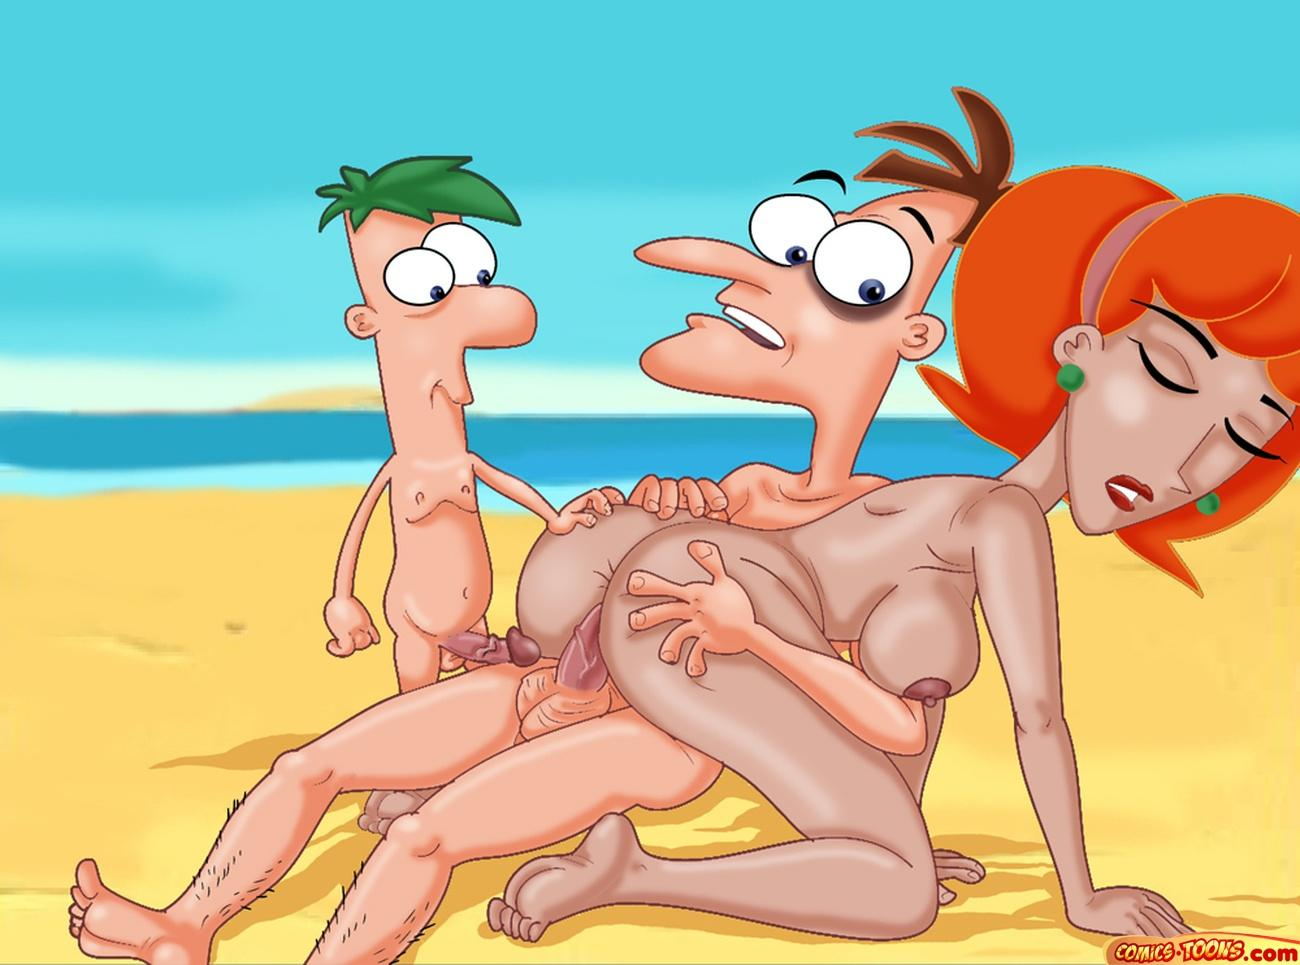 phineas and linda ferb nude How tall is a hunter in halo